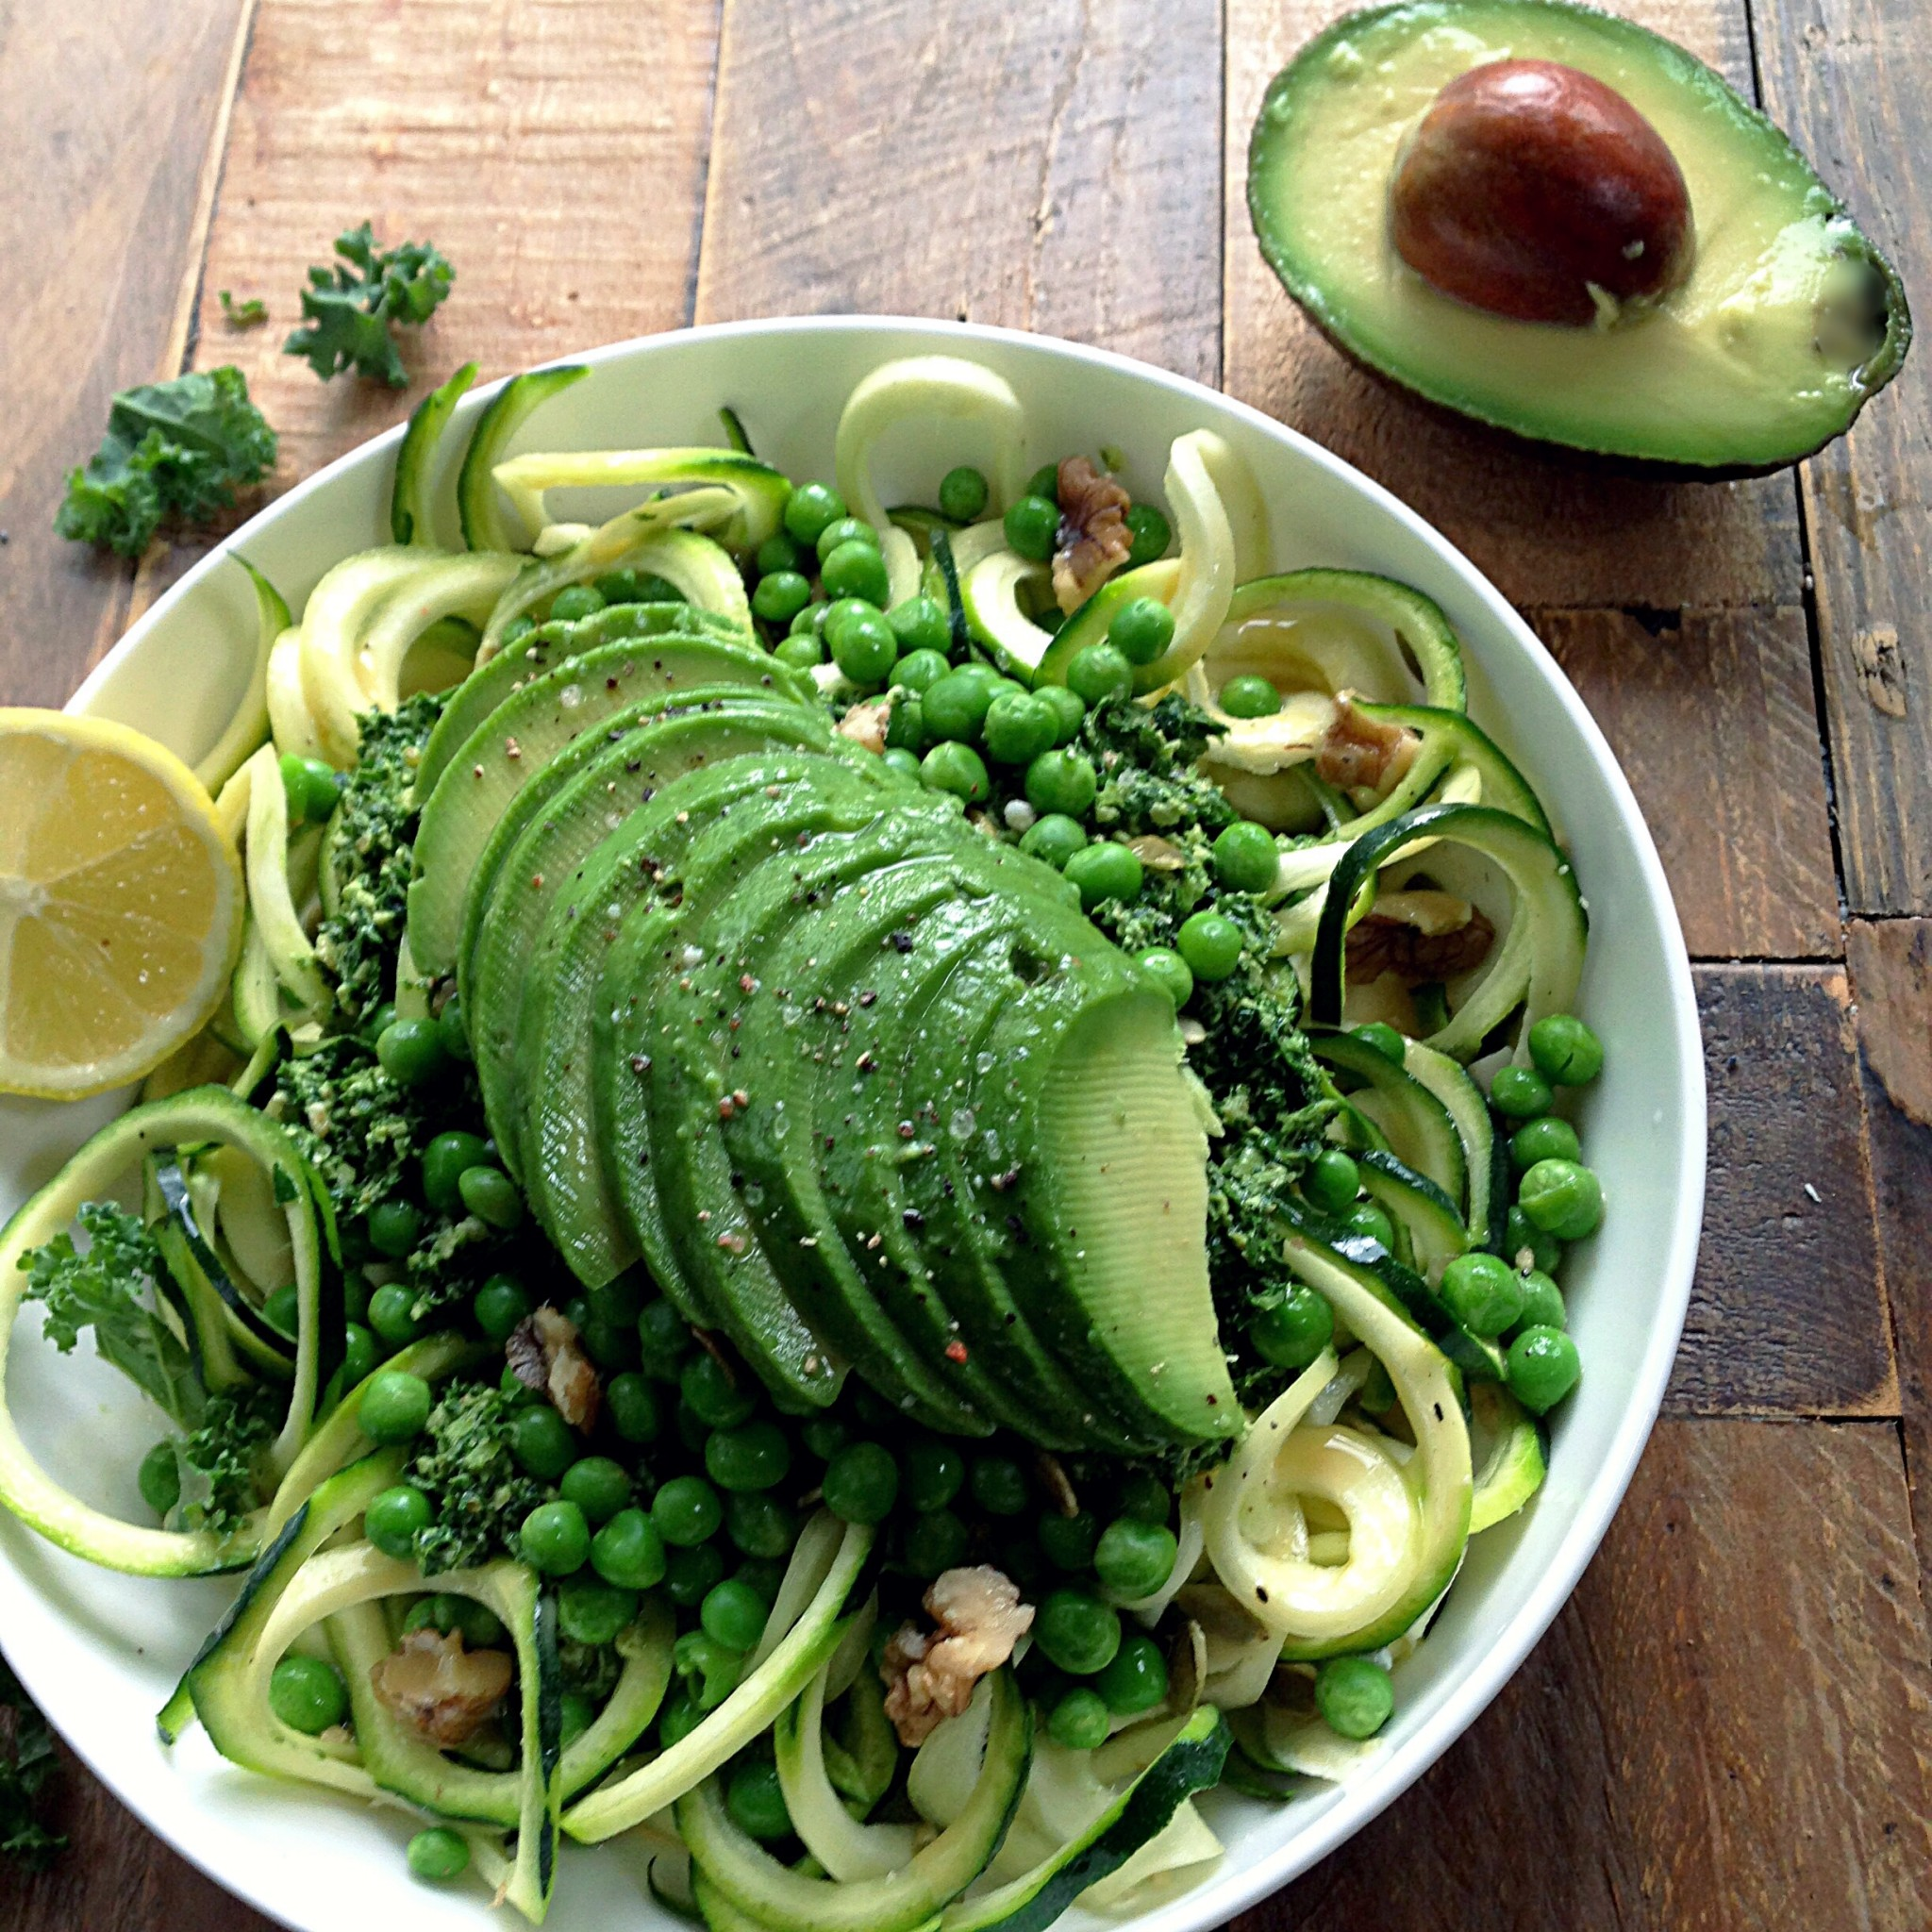 Top ten healthy and light vegan dinners rebel recipes courgette pasta with kale pesto forumfinder